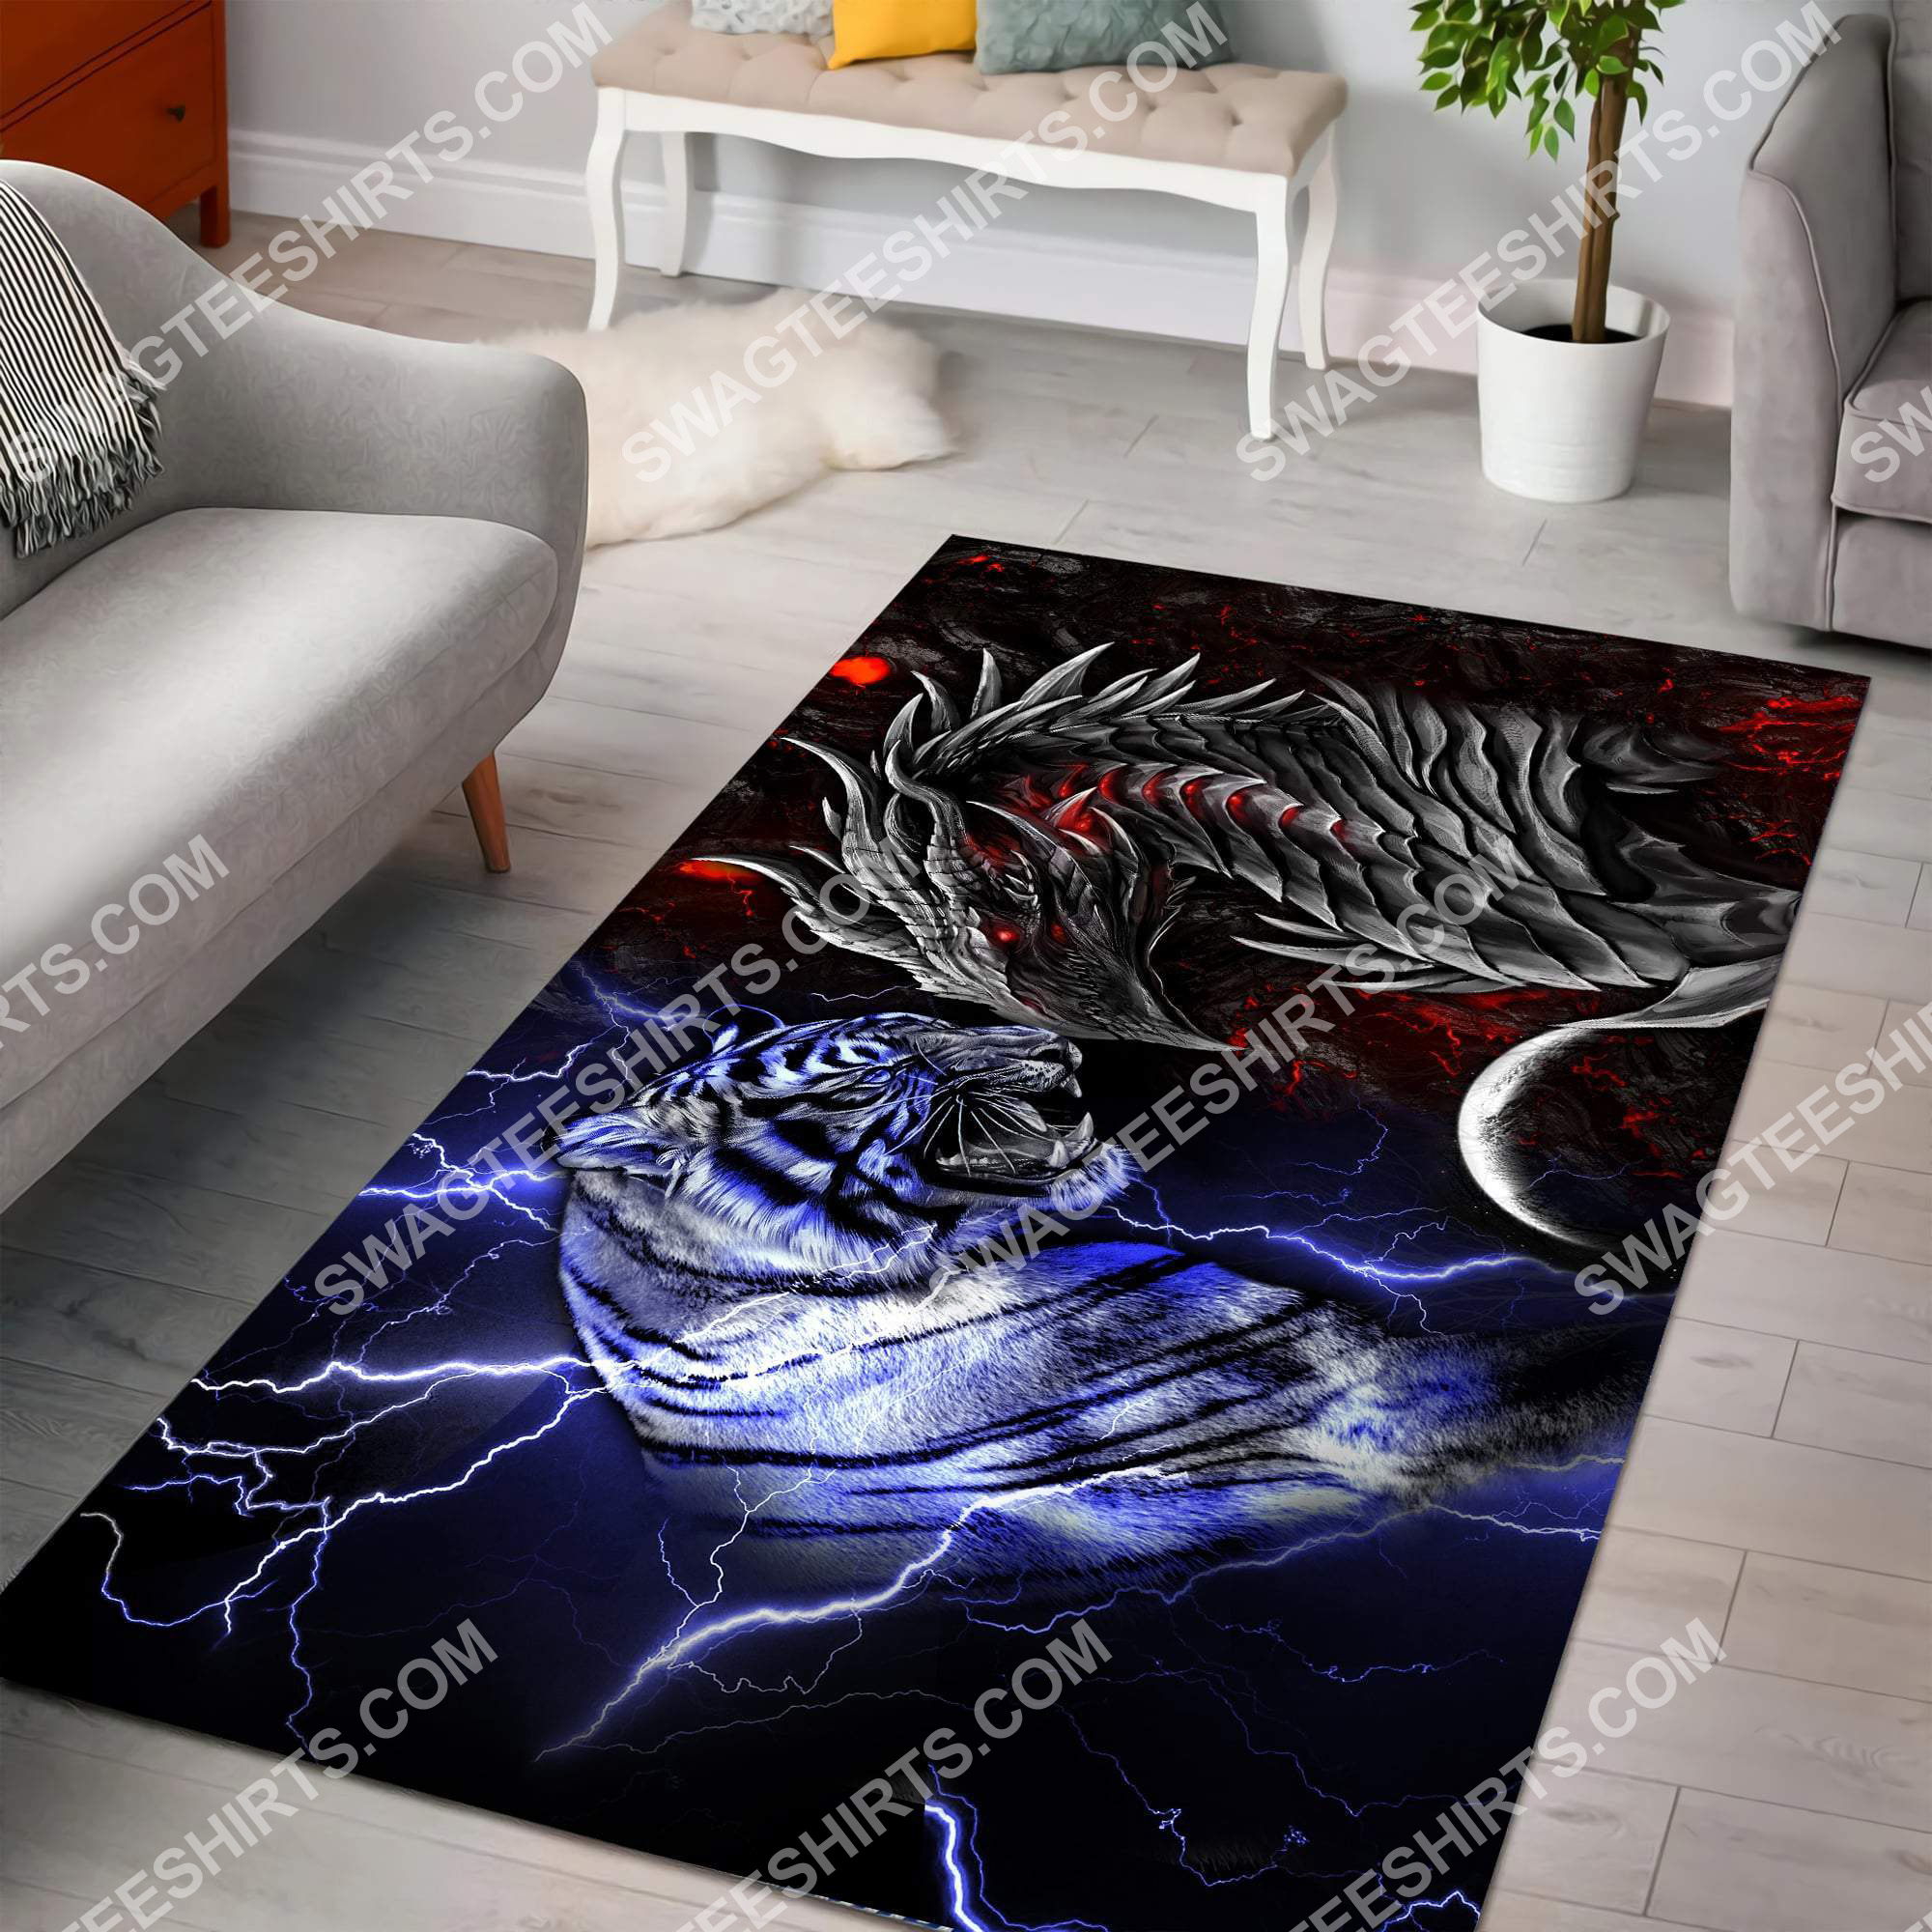 dragon and tiger fire and ice all over printed rug 2(1) - Copy